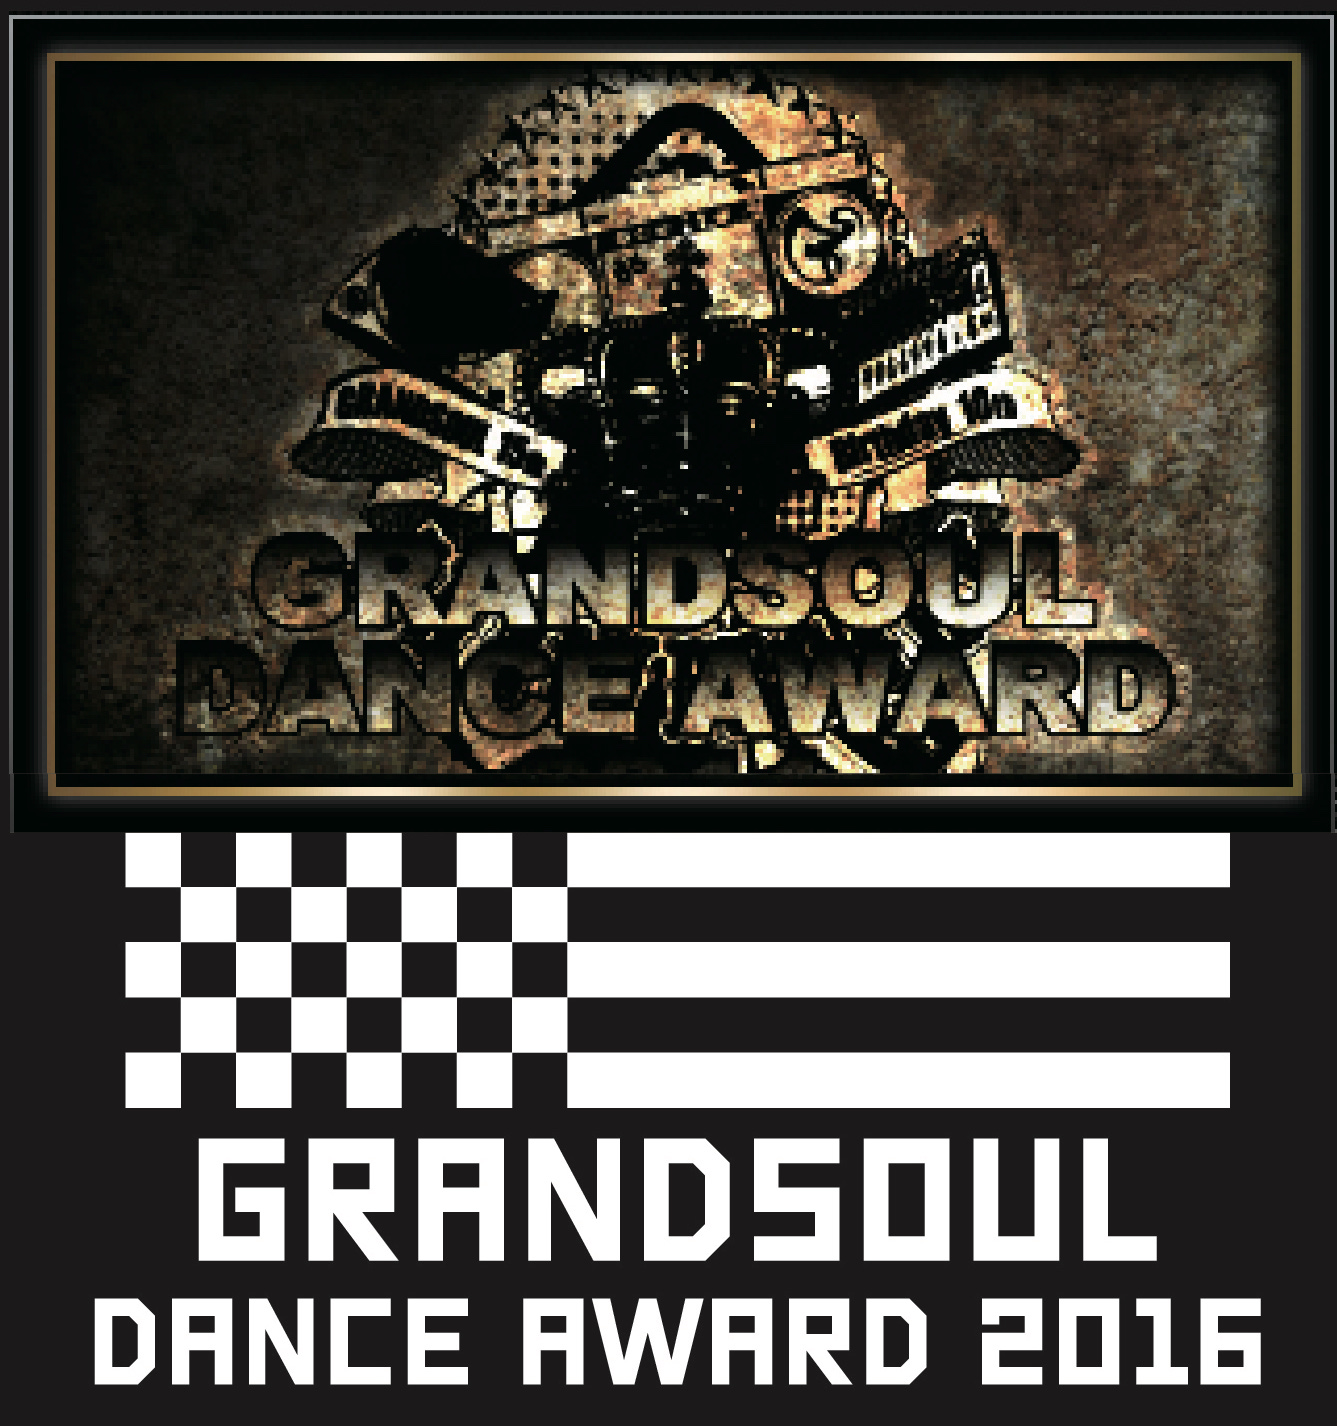 GRANDSOUL DANCE AWARD 2016